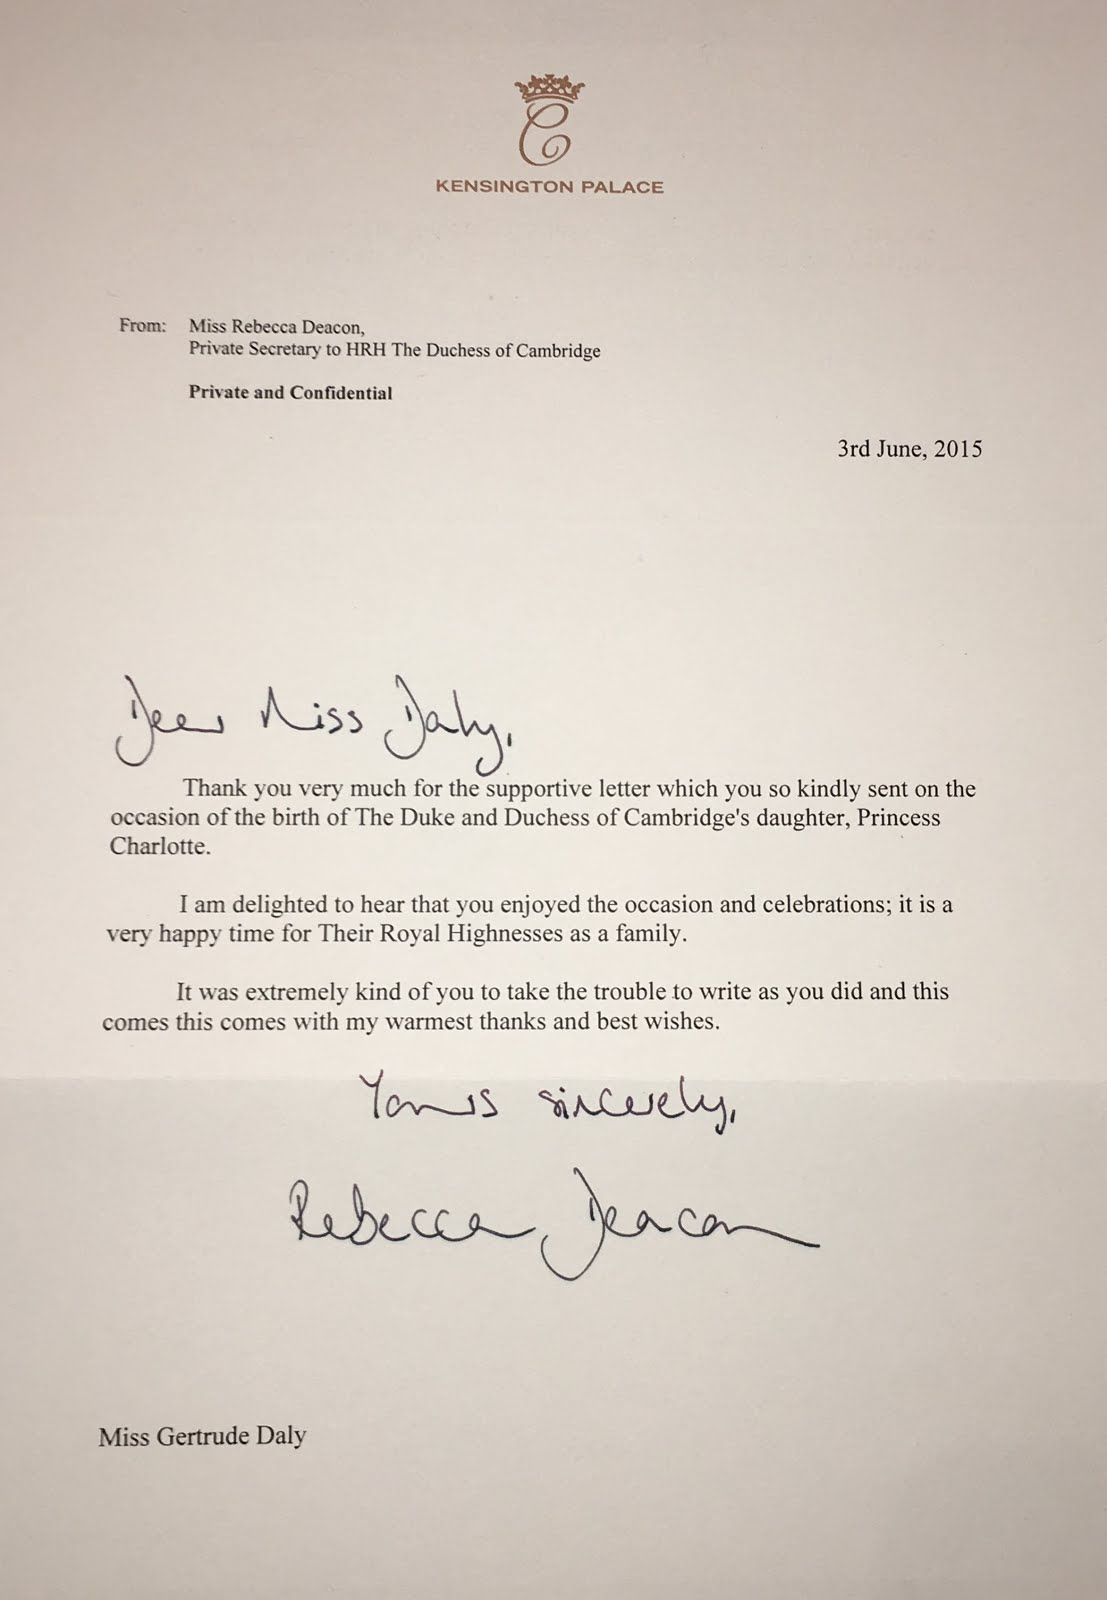 Gerts royals how to format your letter rebecca deacon has her name printed at the top of the letter so people know who it is from she also has her title which is important because if you wrote stopboris Gallery